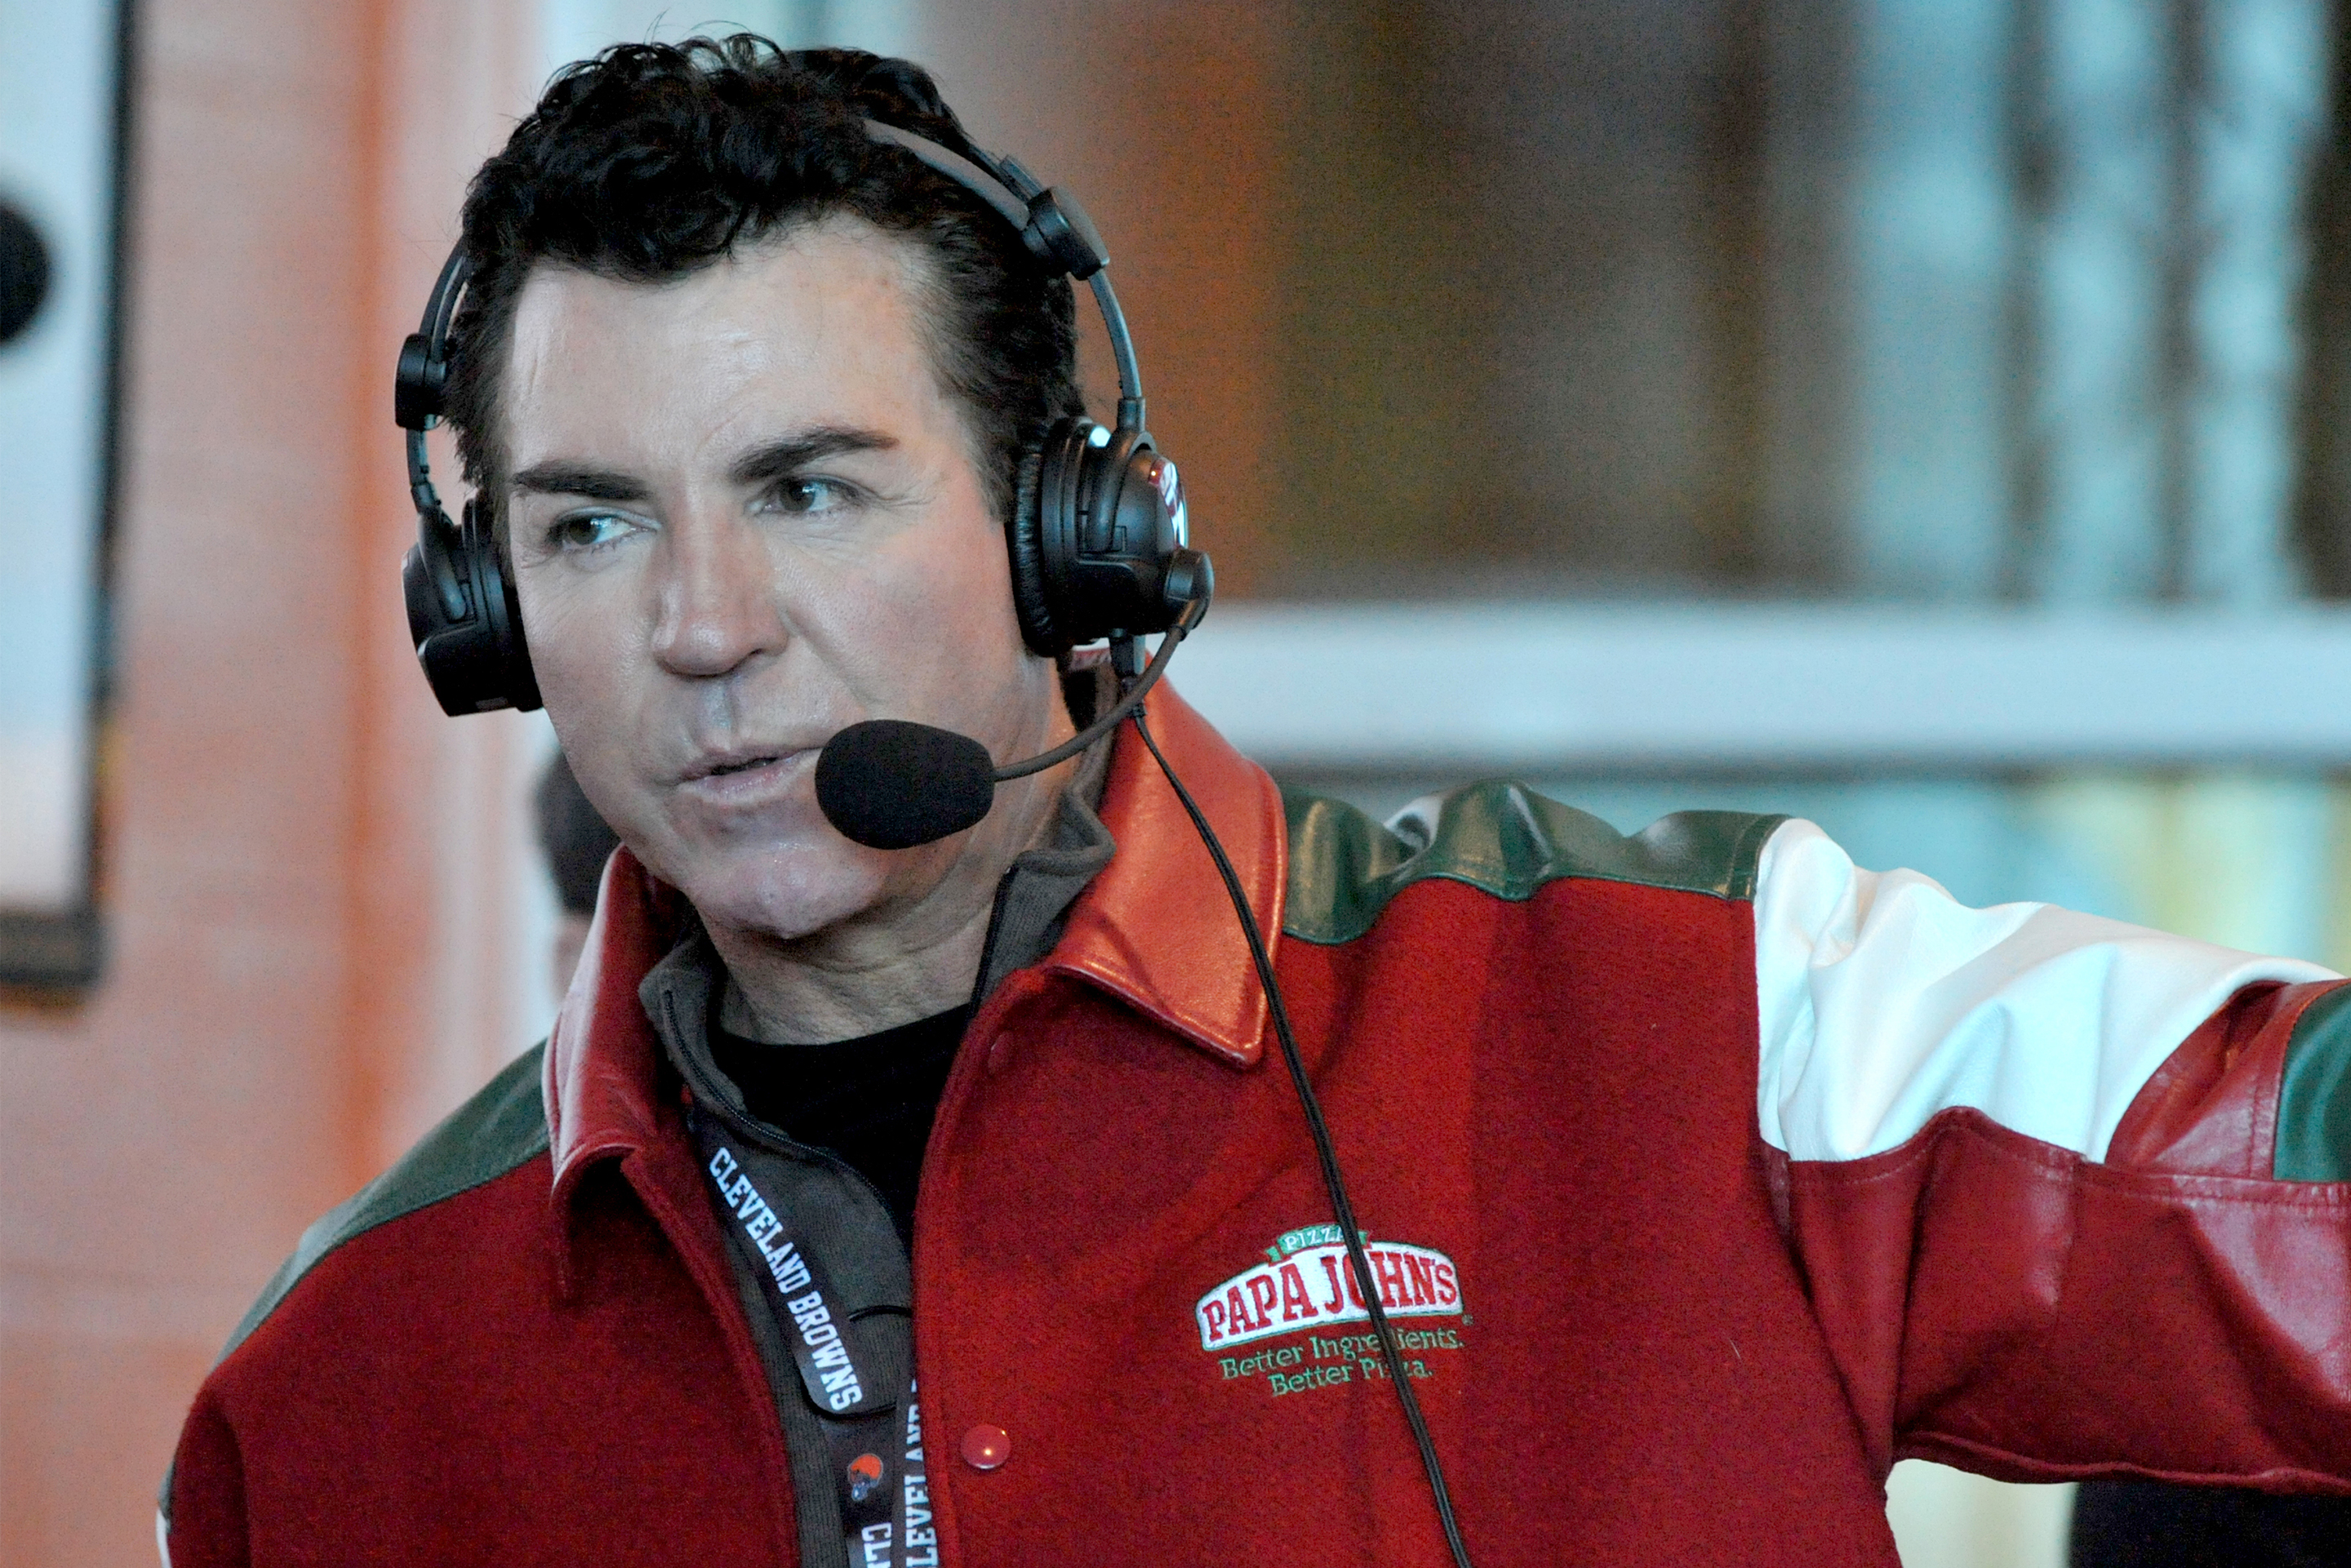 john-schnatter-papa-johns-dictionary